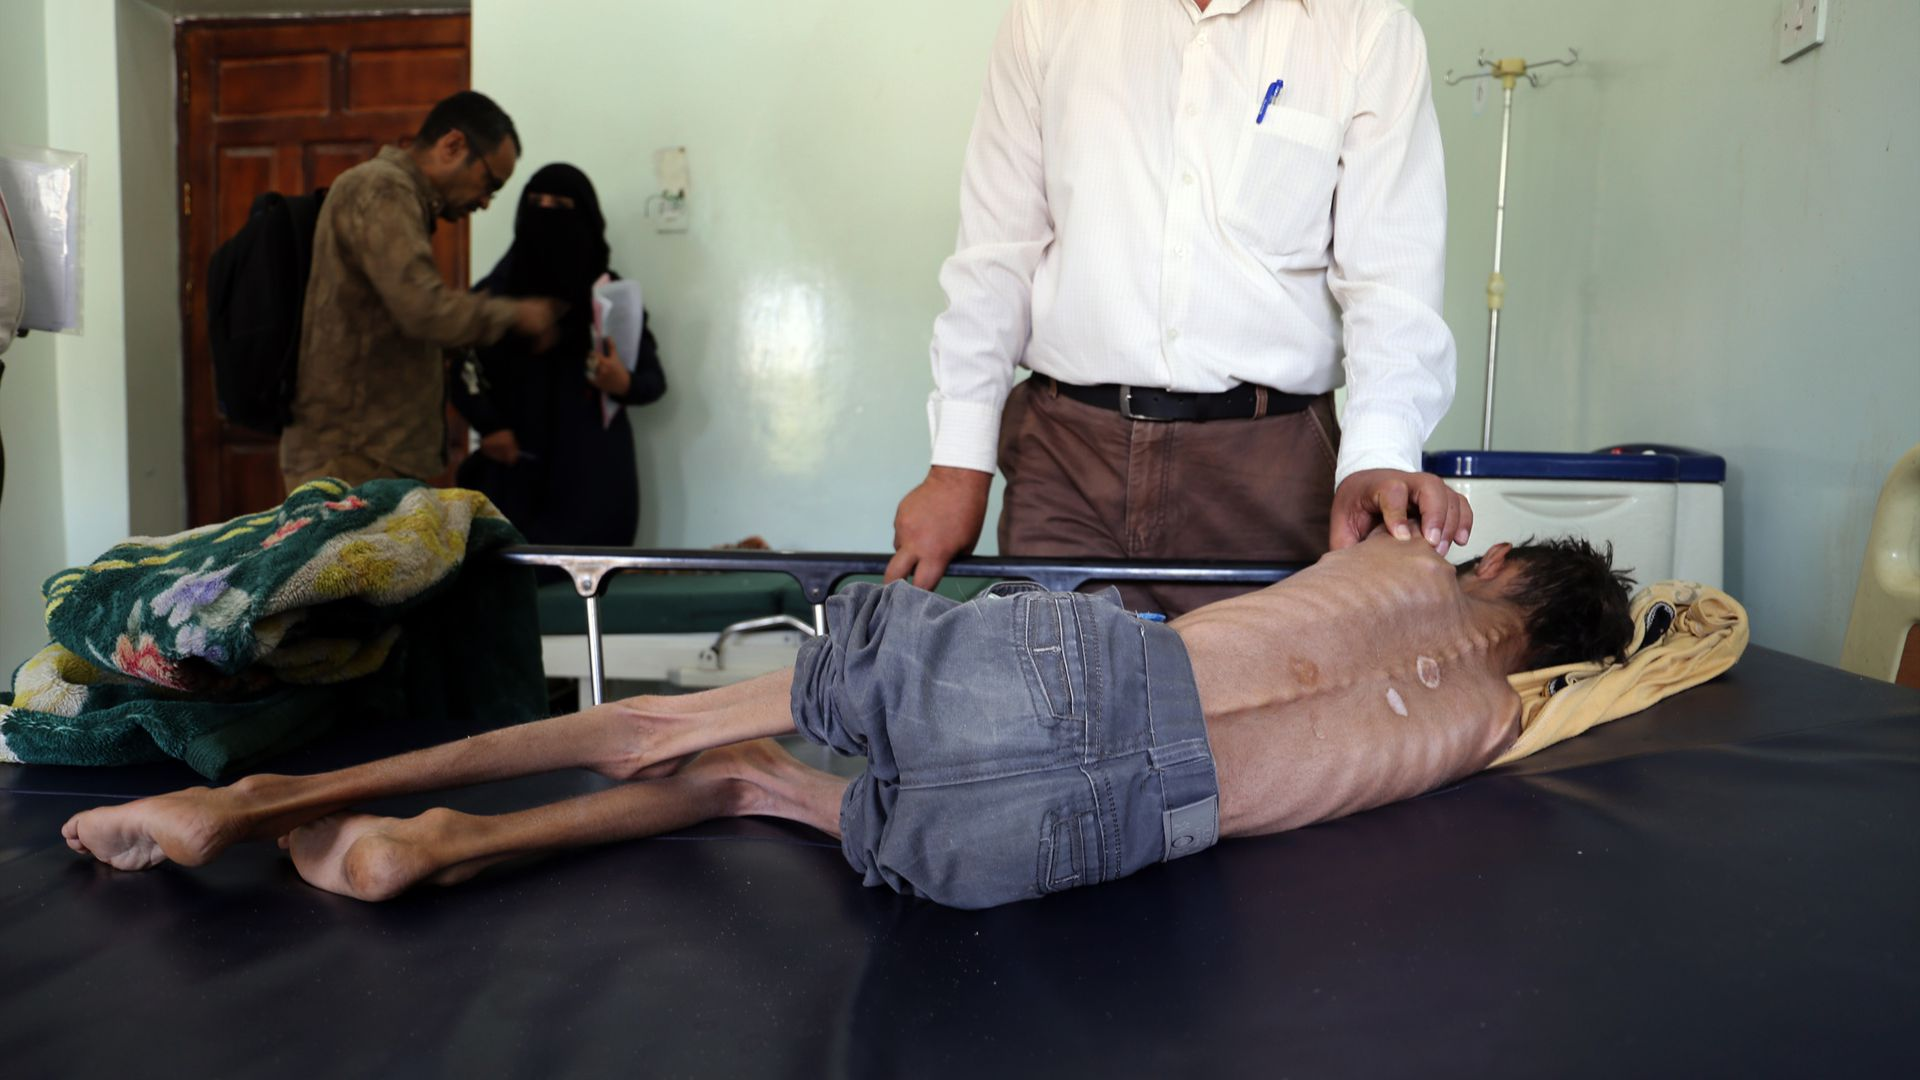 A severely malnourished boy lays in a hospital.